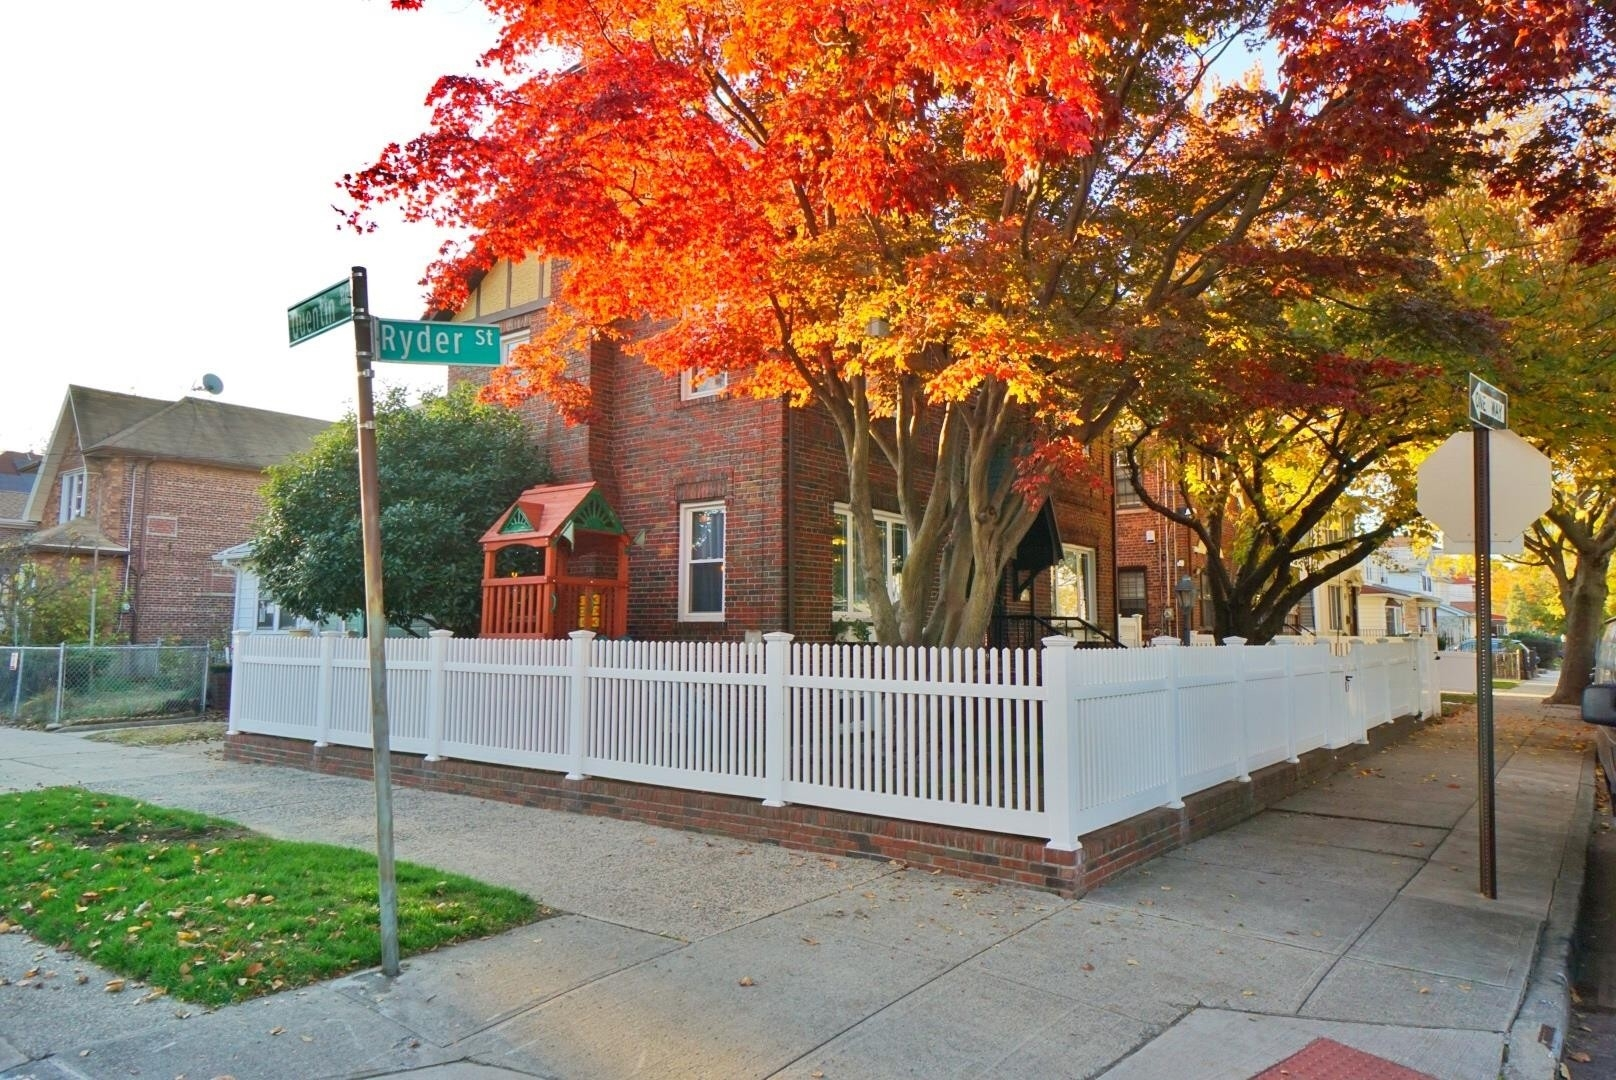 2. Single Family Townhouse for Sale at 1684 RYDER ST , TOWNHOUSE Marine Park, Brooklyn, NY 11234